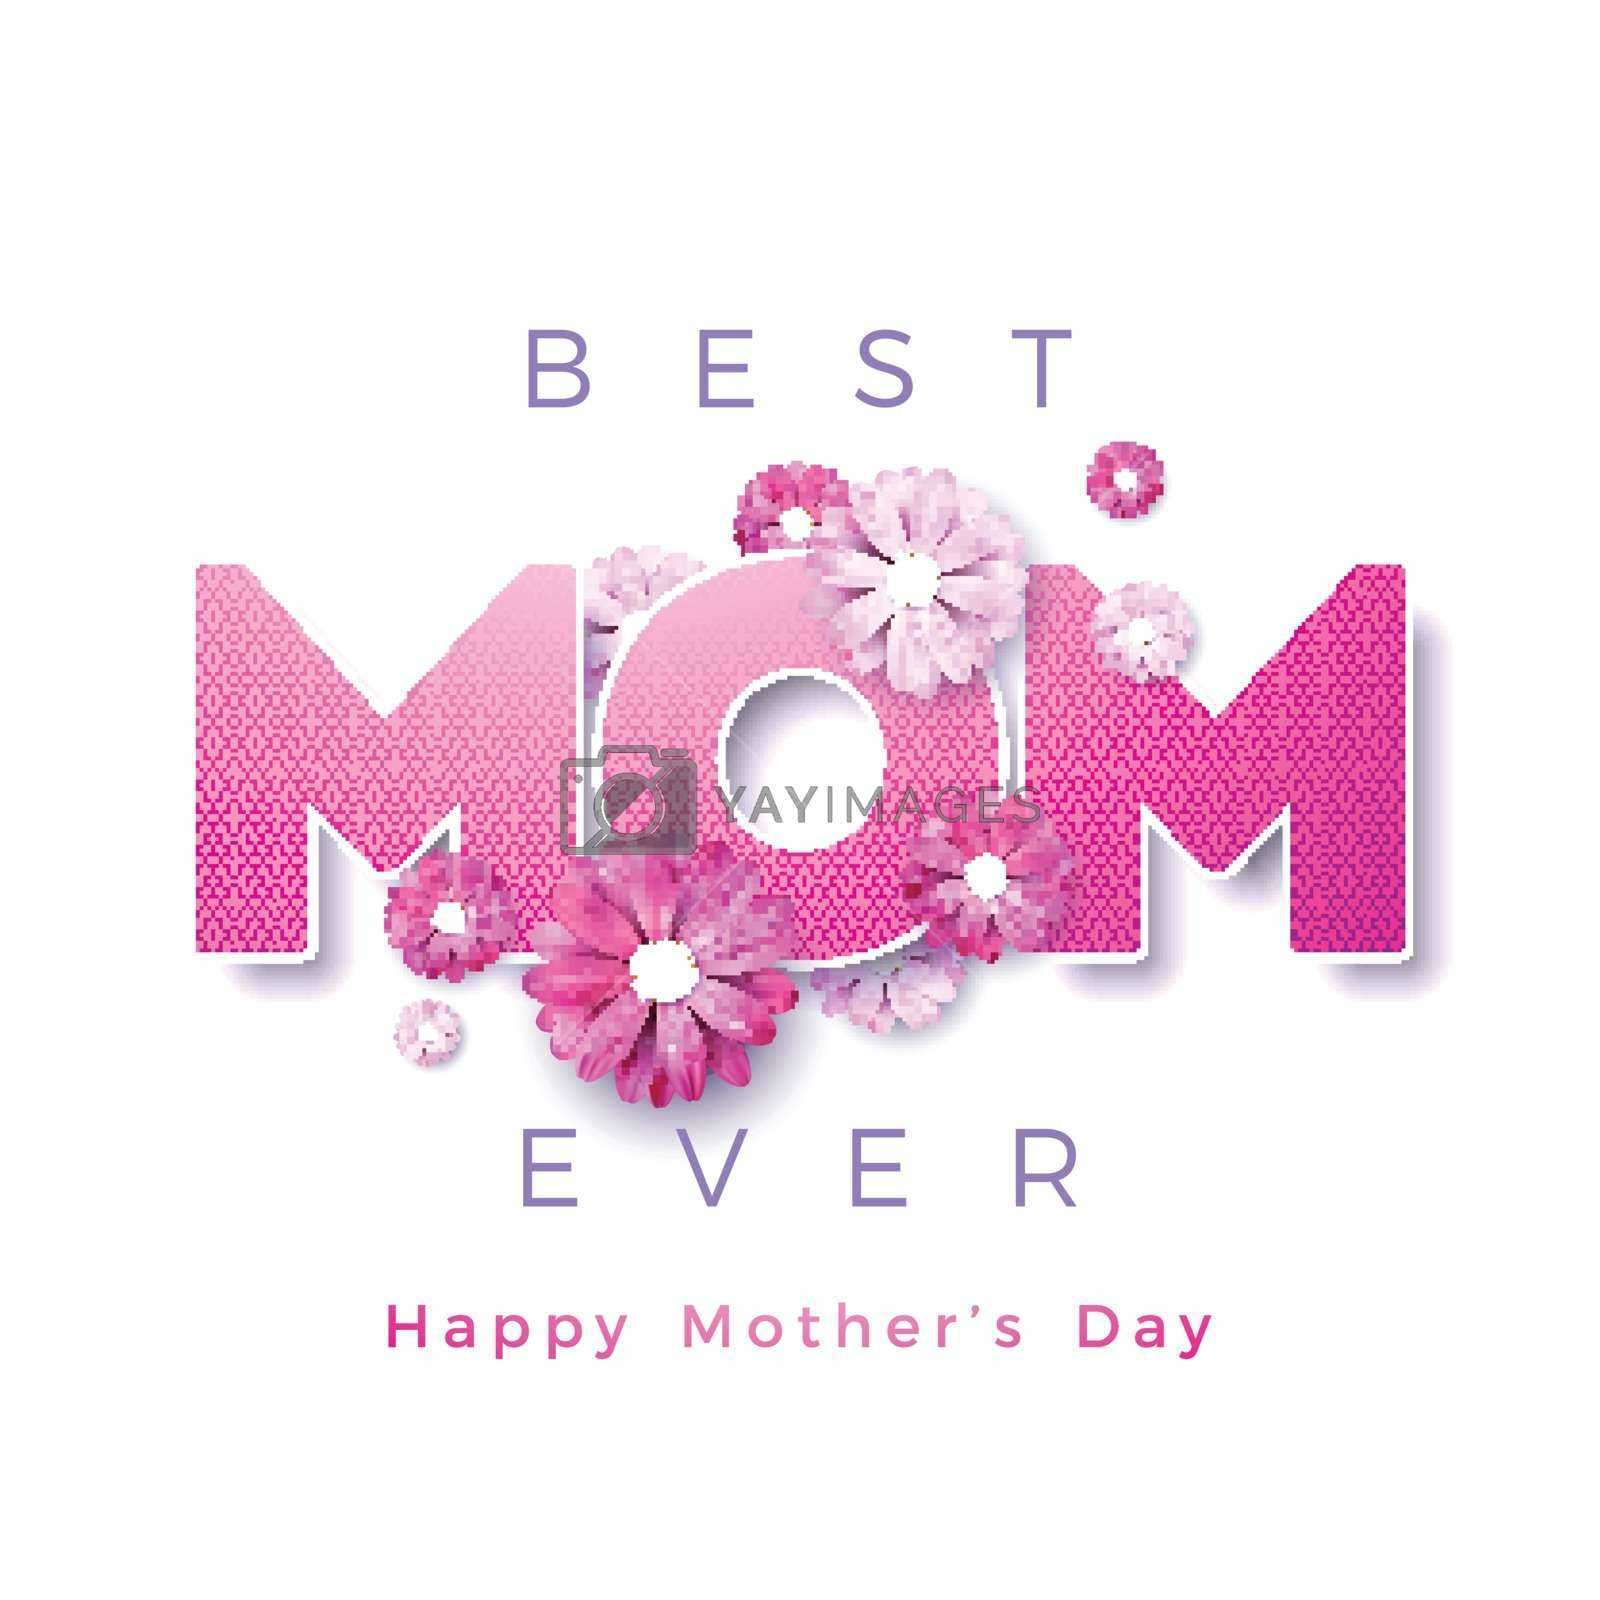 Happy Mothers Day Greeting Card Design With Flower And Best Regarding Mom Birthday Card Template